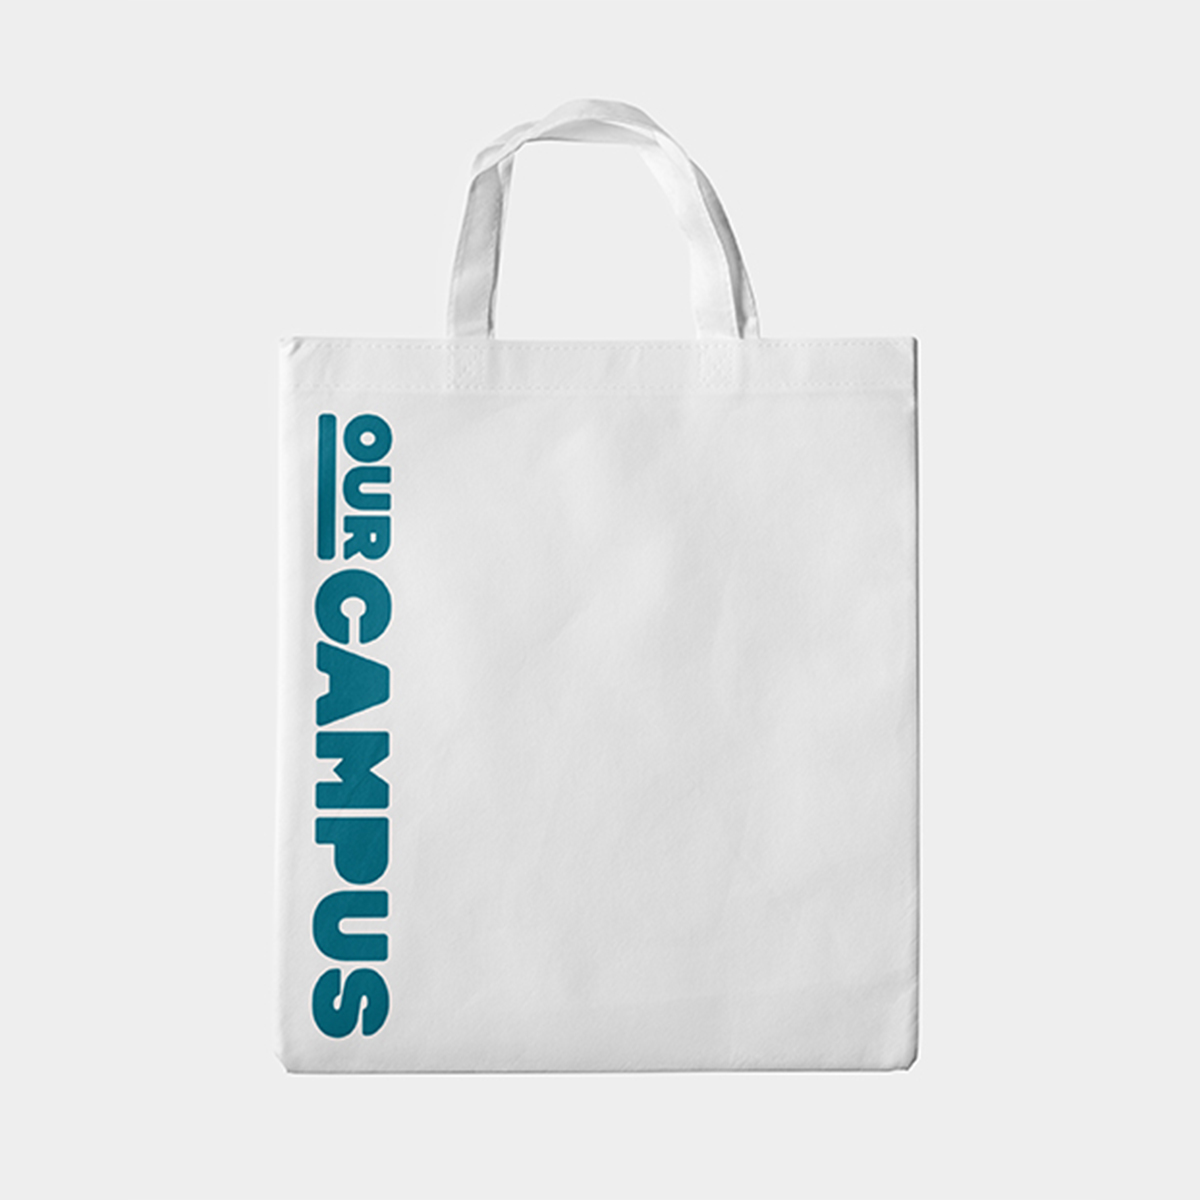 SPX Agency Work: OurCampus merchandising tote bag